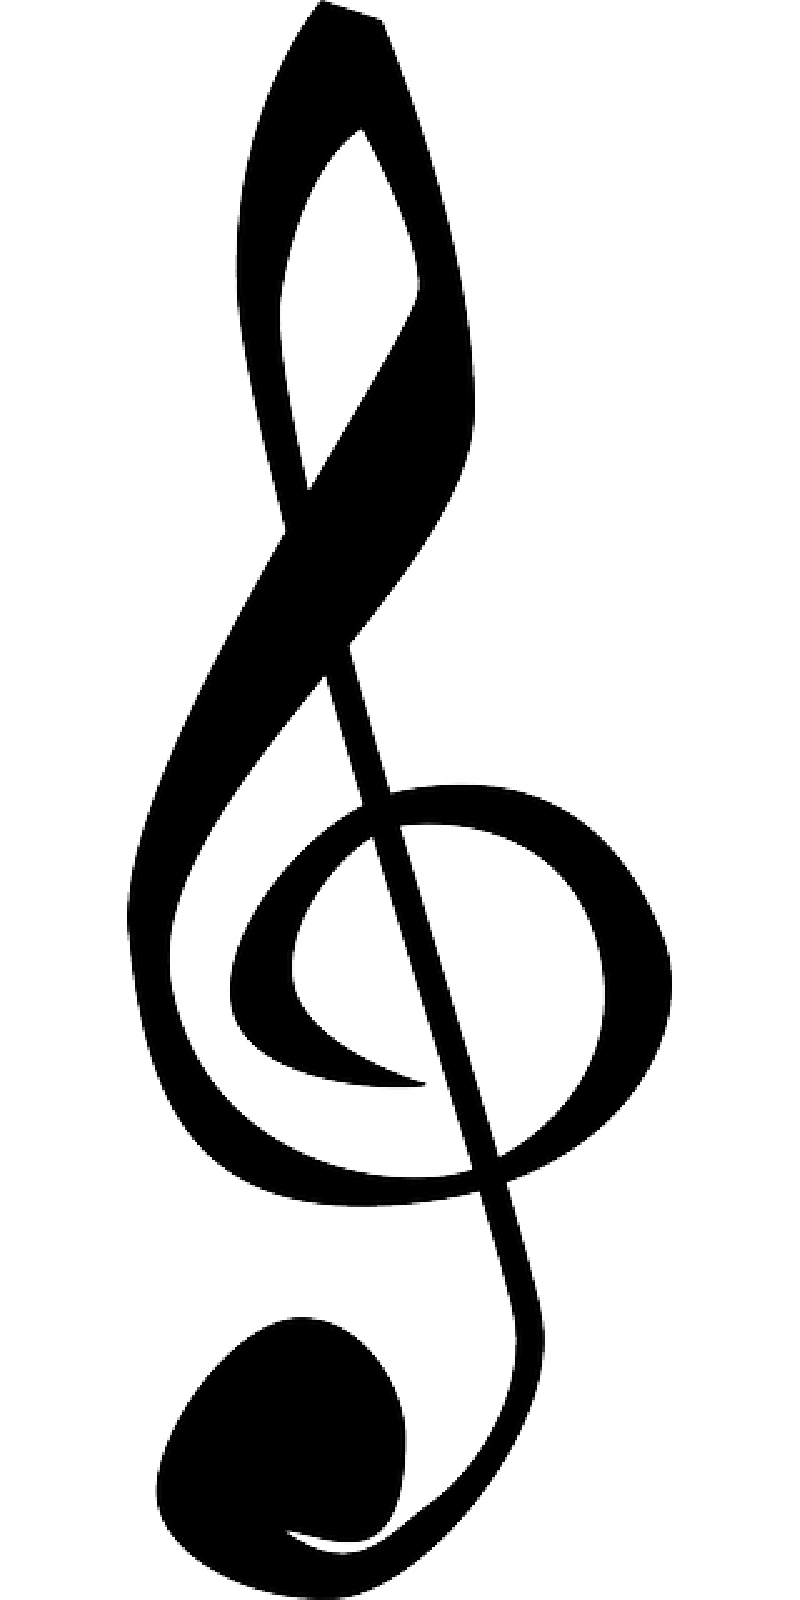 Christmas music clipart black and white library Music Notes Pictures | Free download best Music Notes Pictures on ... library